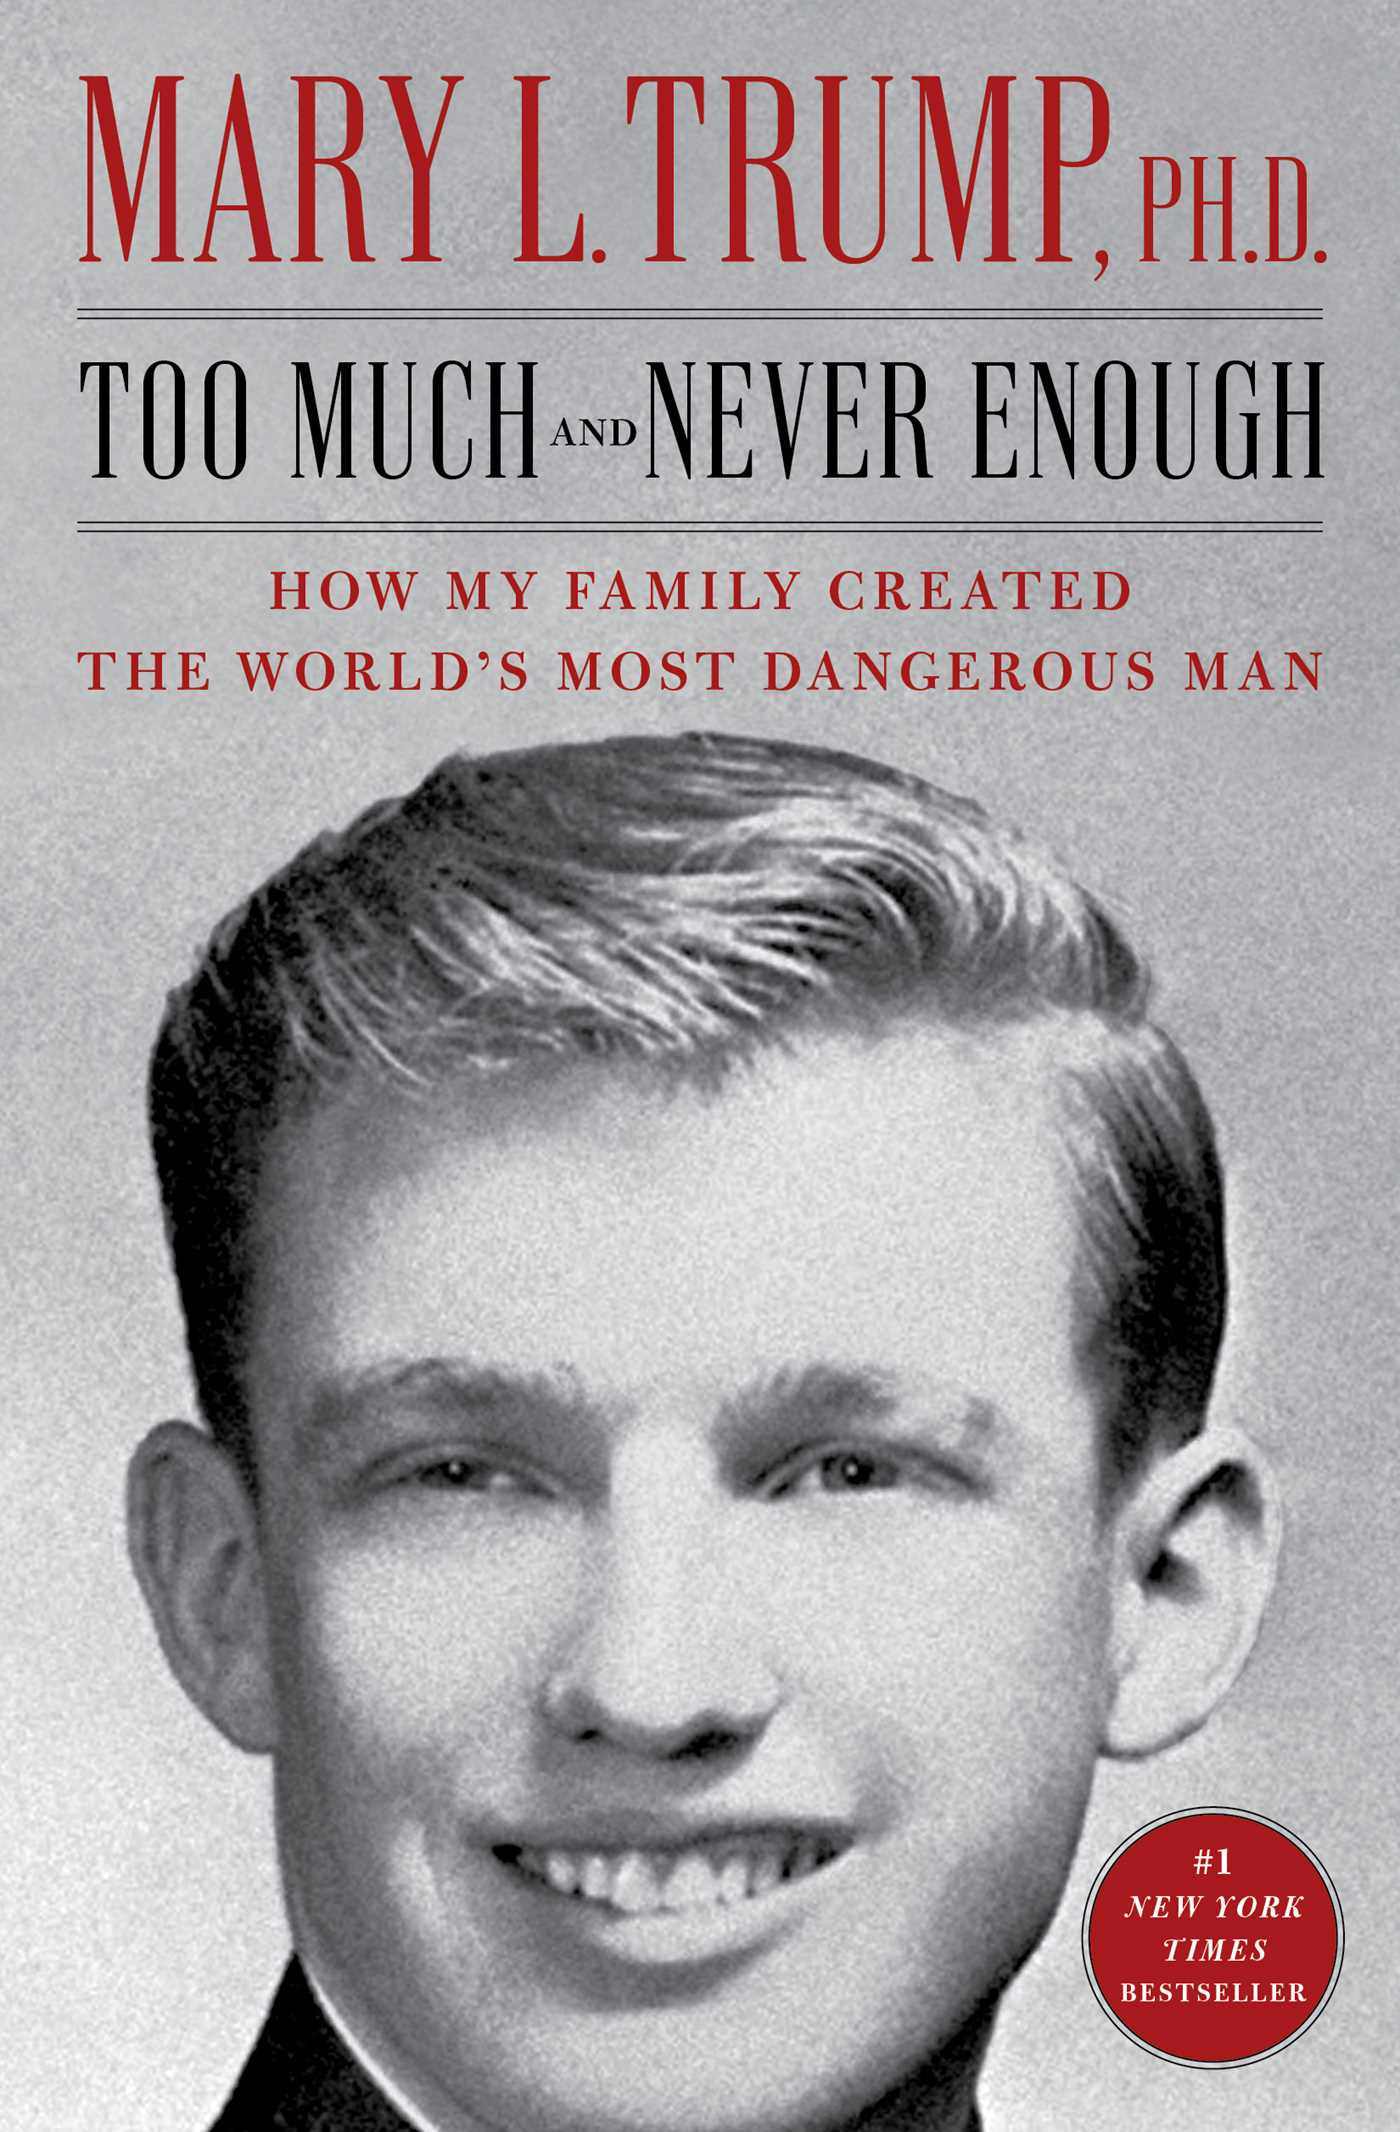 Too Much and Never Enough [electronic resource] : How My Family Created the World's Most Dangerous Man